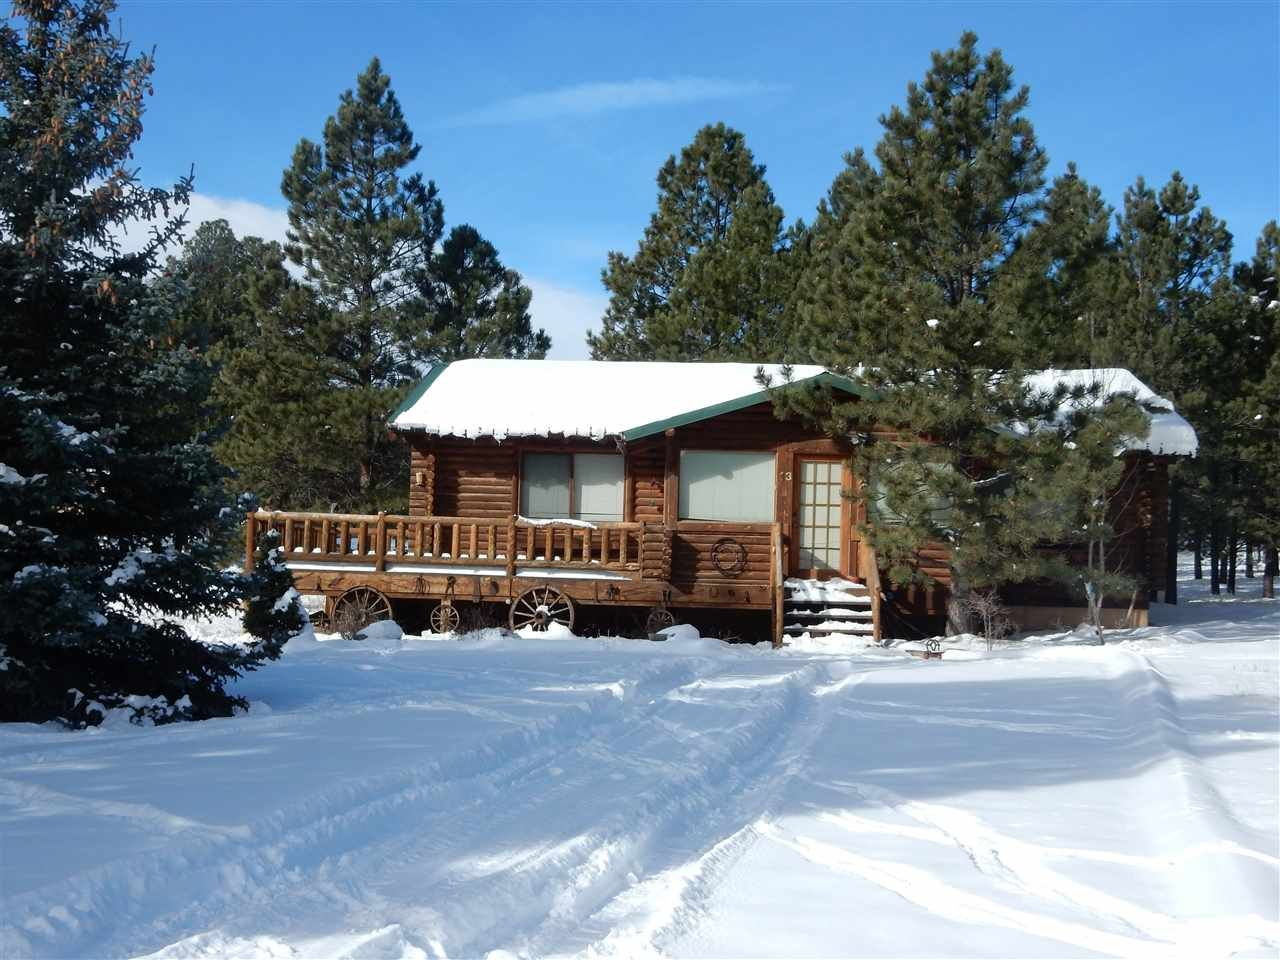 fire deer cabins rent angel trail united states bayfield colorado for cabin in rooms